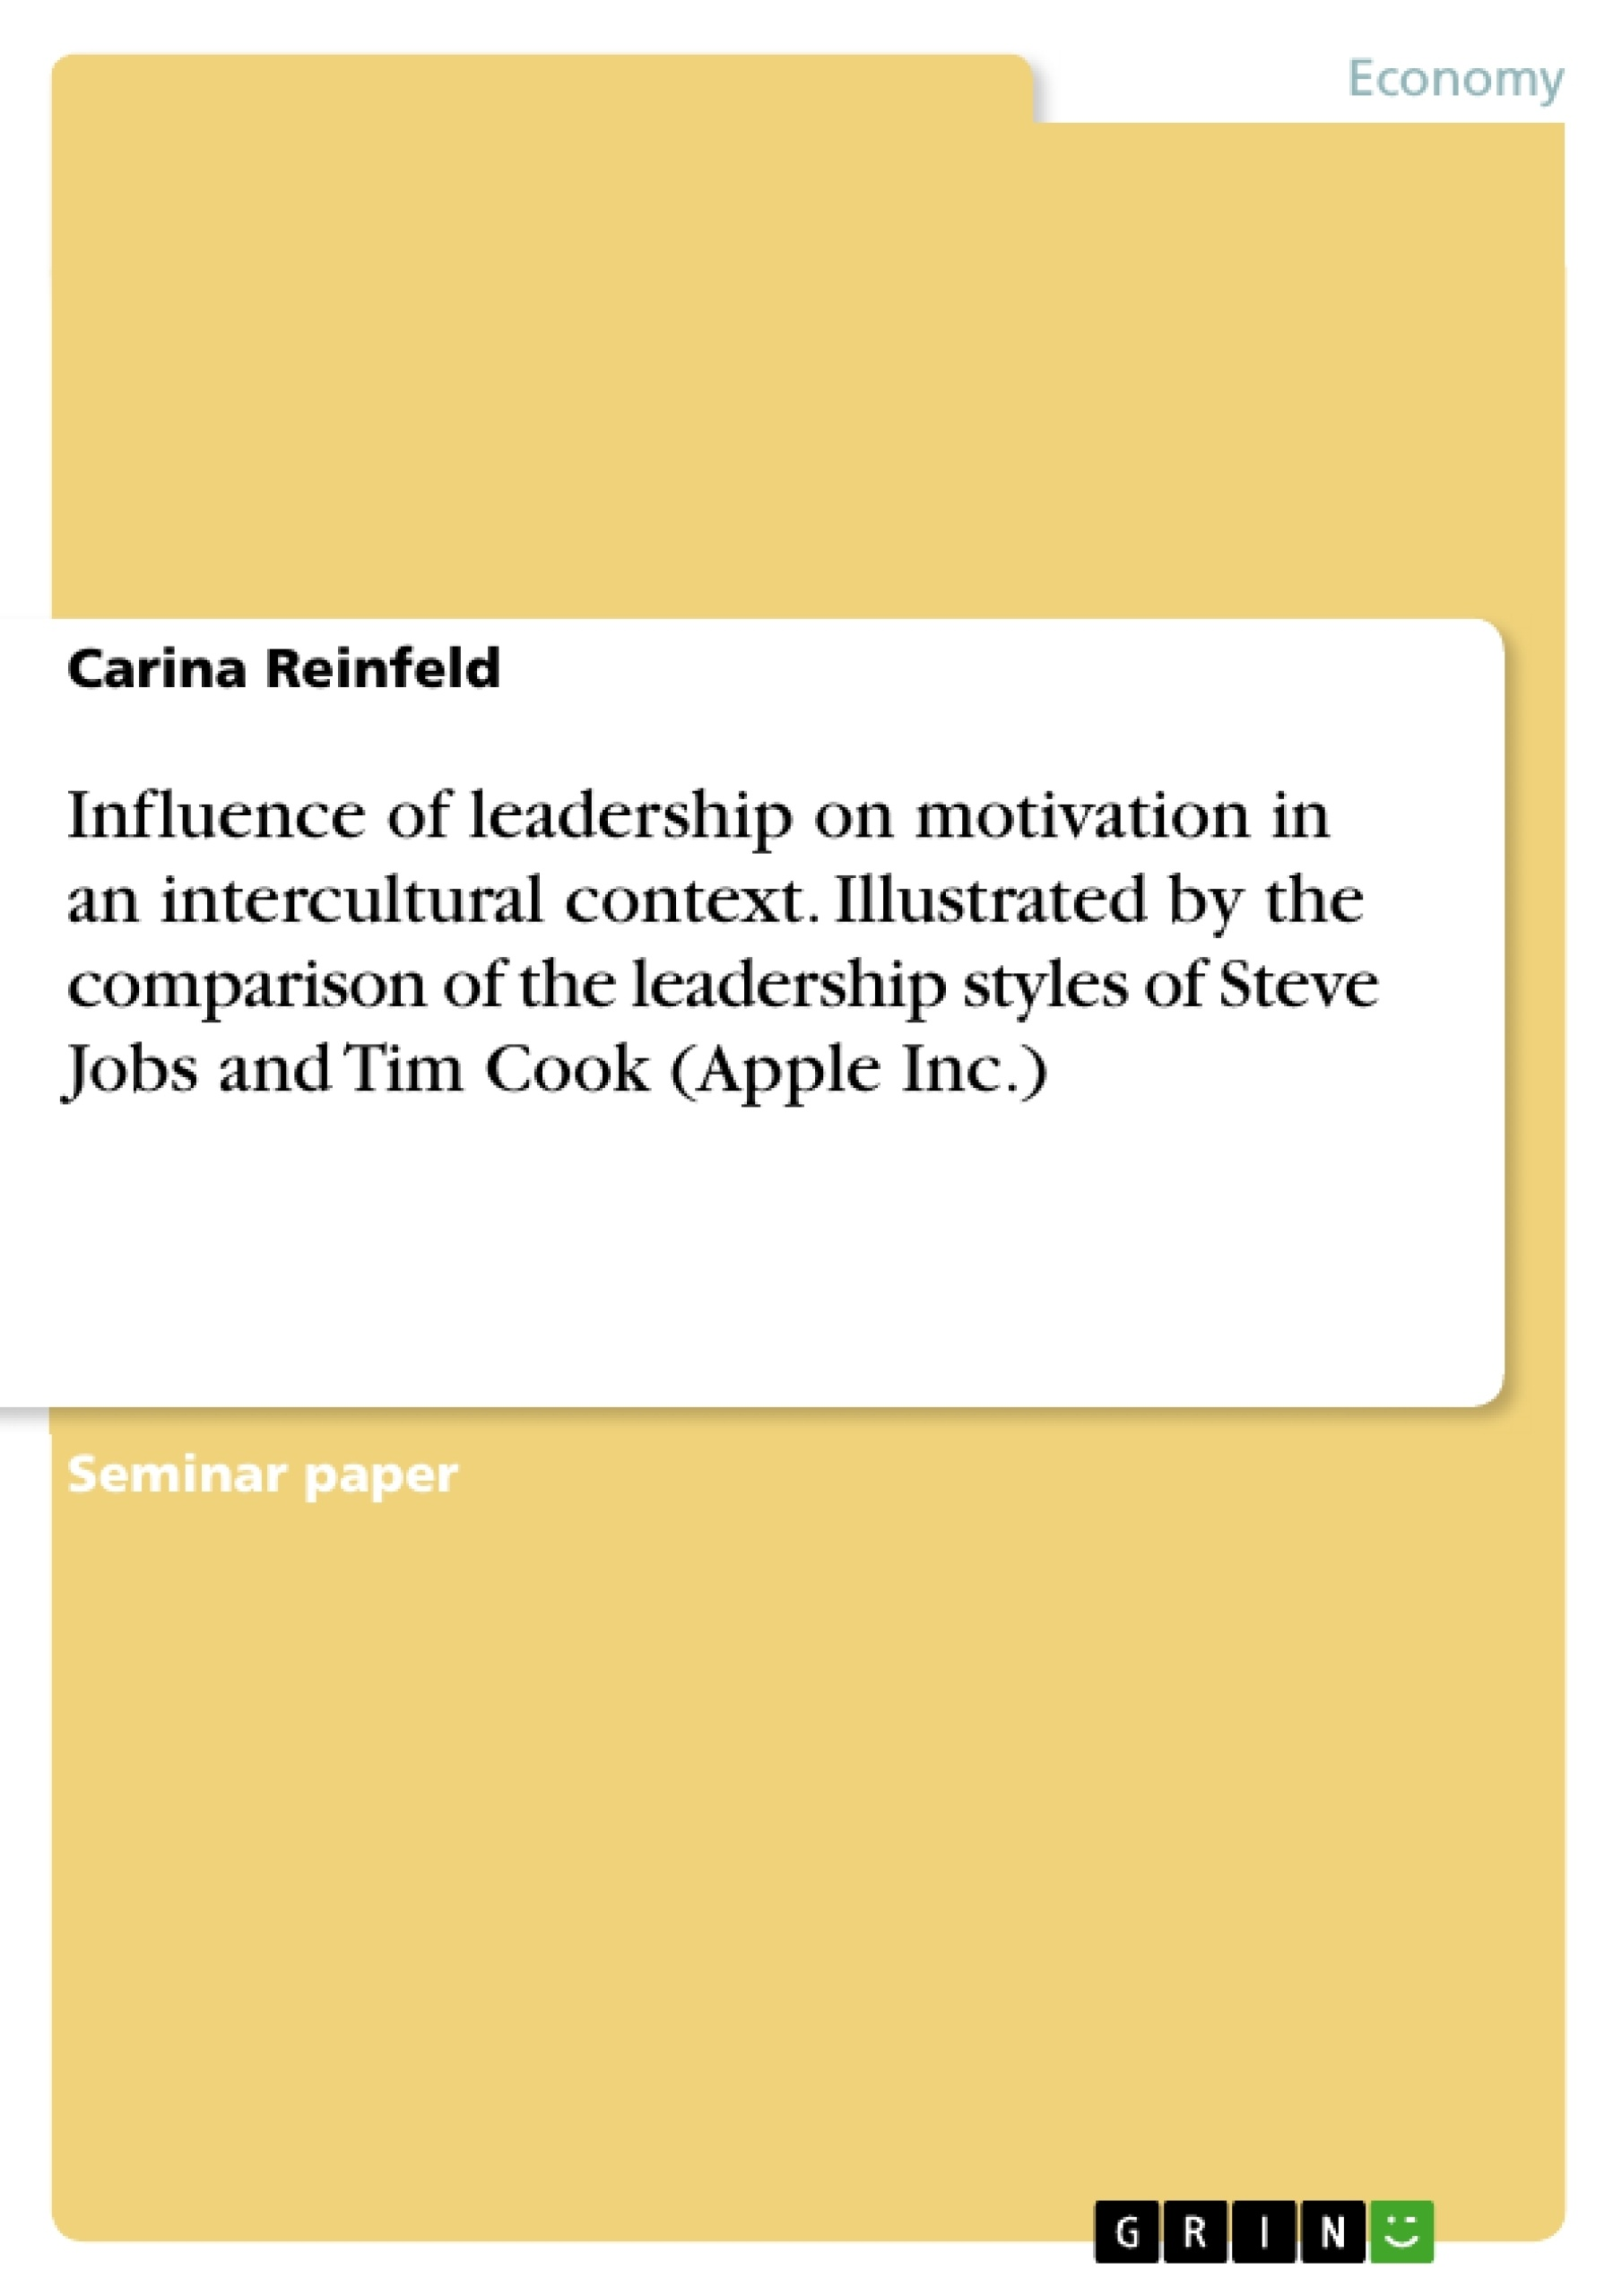 Title: Influence of leadership on motivation in an intercultural context. Illustrated by the comparison of the leadership styles of Steve Jobs and Tim Cook (Apple Inc.)